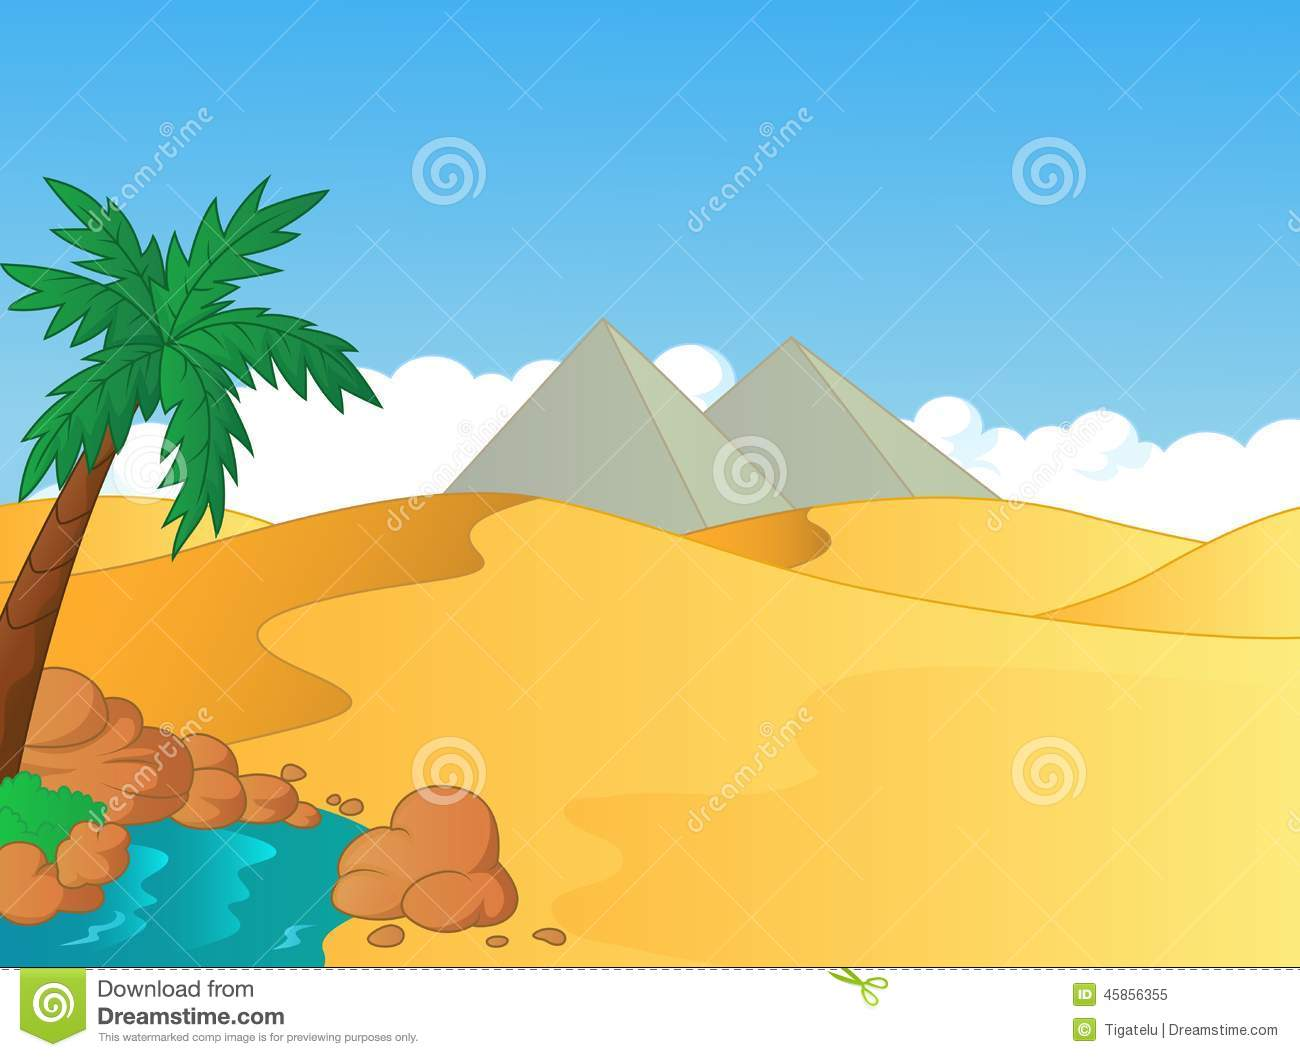 Cartoon Illustration Of Small Oasis In The Desert Stock Vector - Image ...